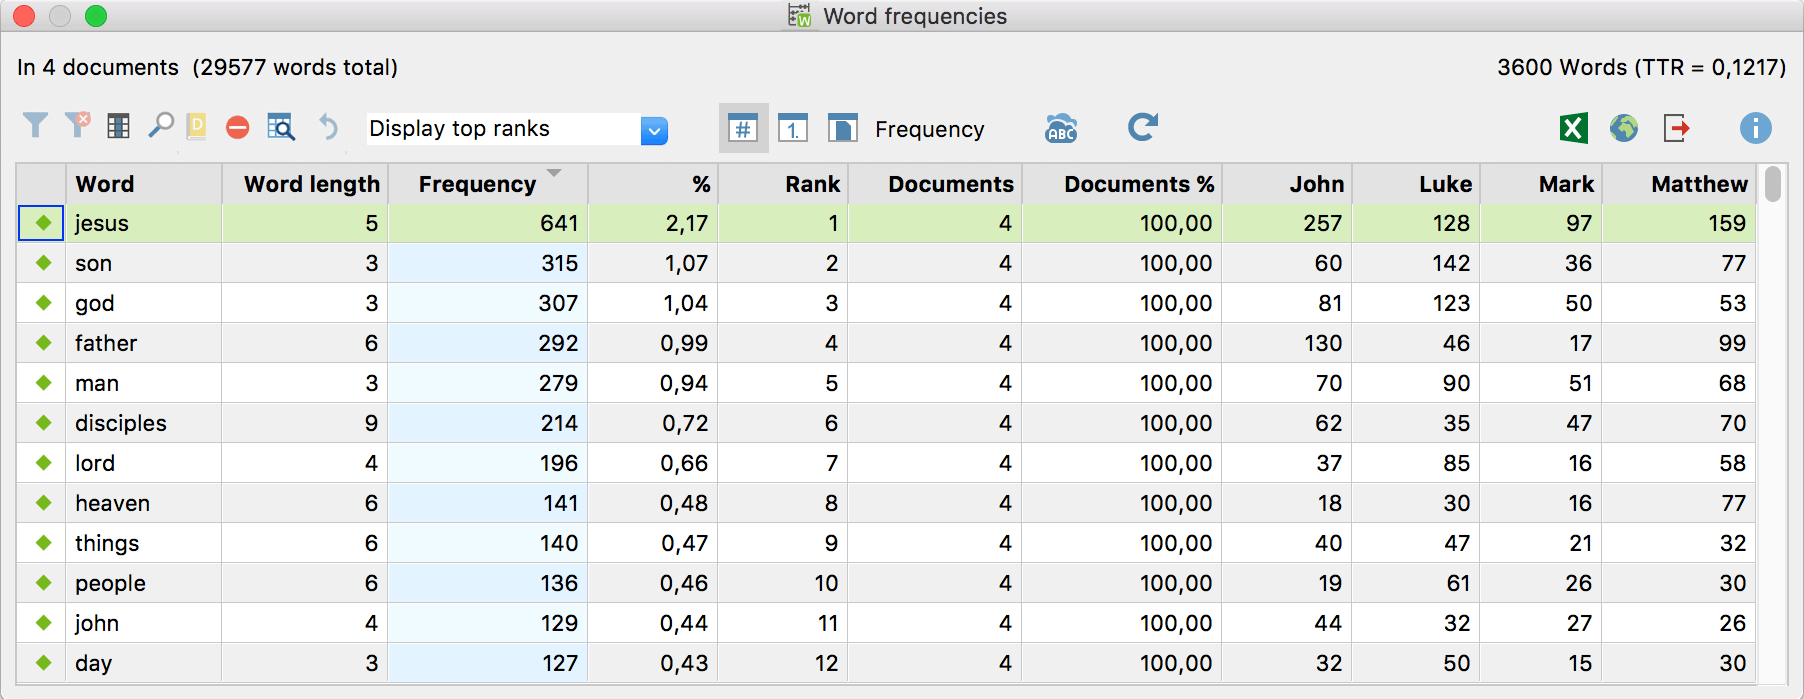 Word frequency table showing the word frequencies for each document